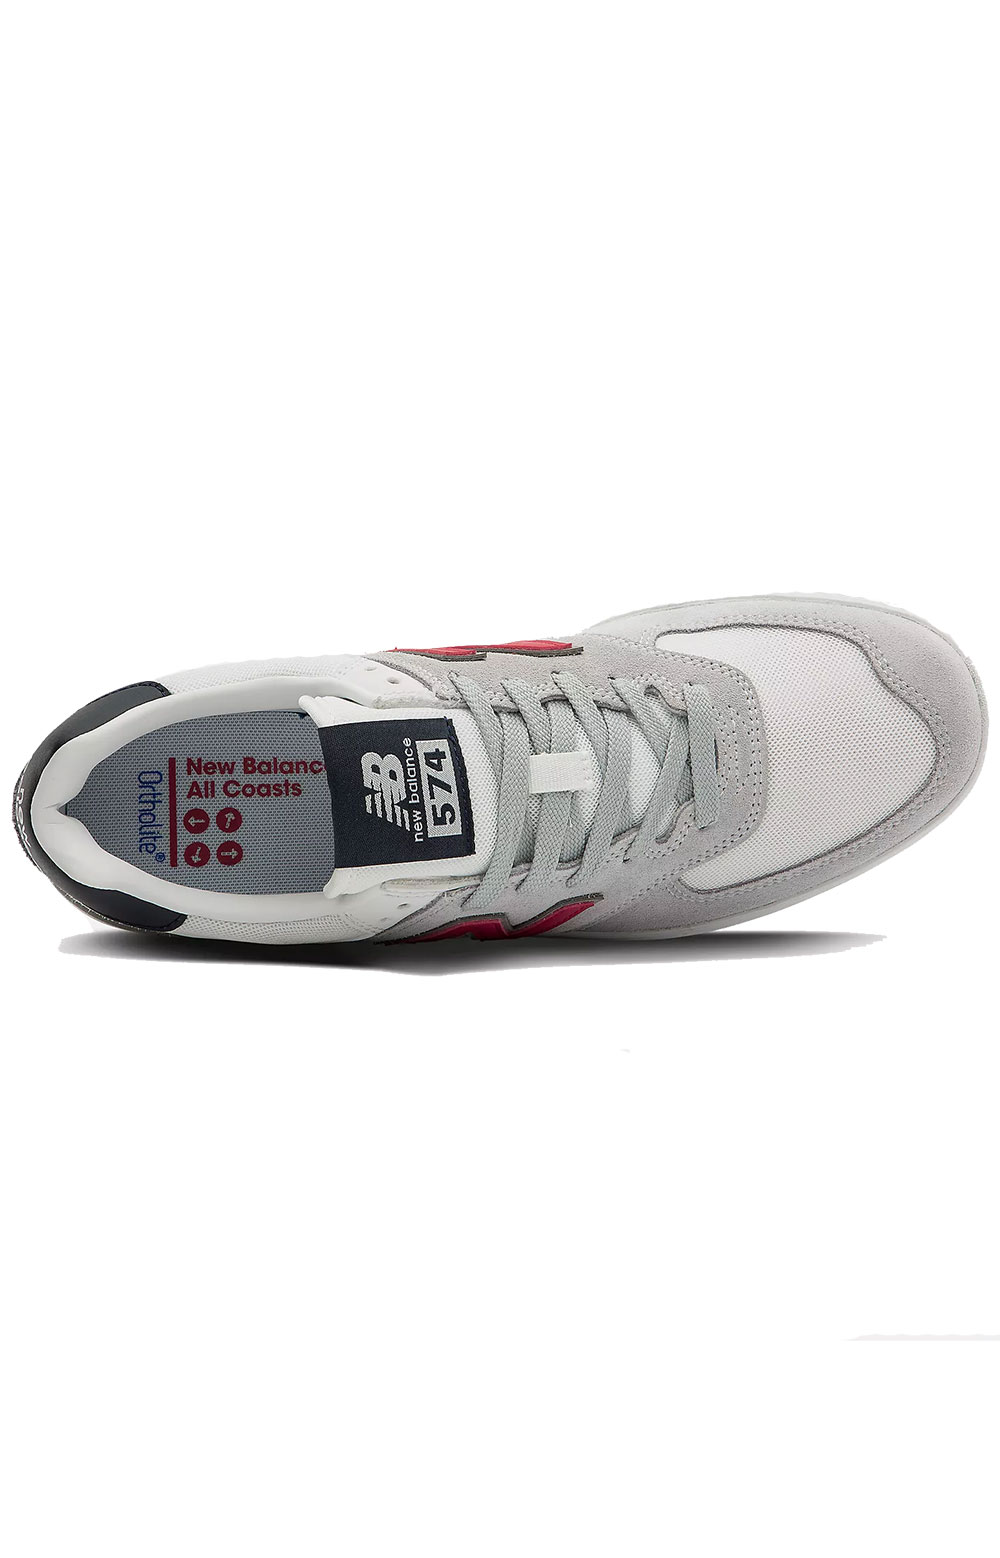 (AM574AGS) All Coasts AM574 Shoes - Grey/Red 3